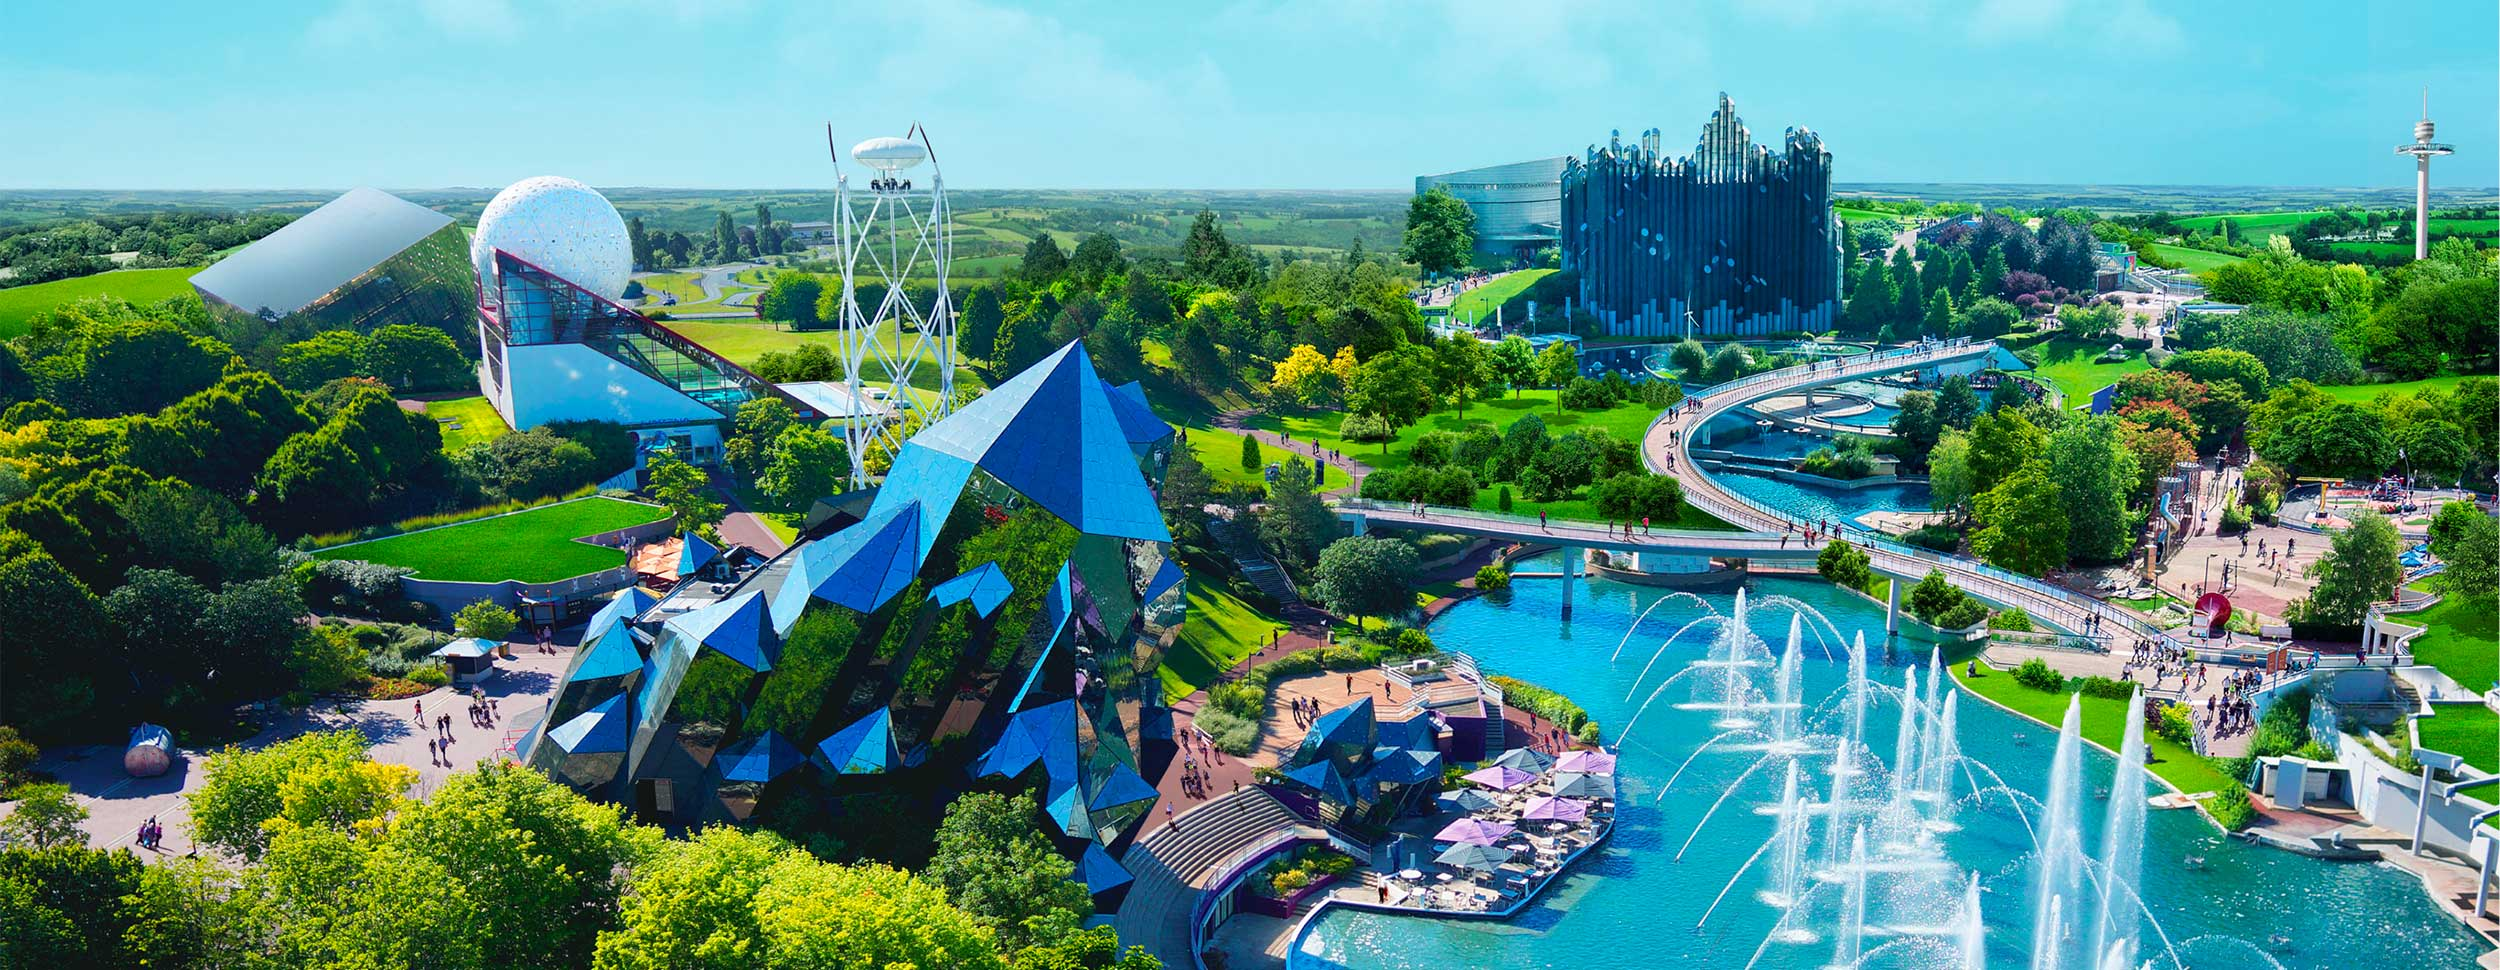 Parc du Futuroscope - ©Momentum Production